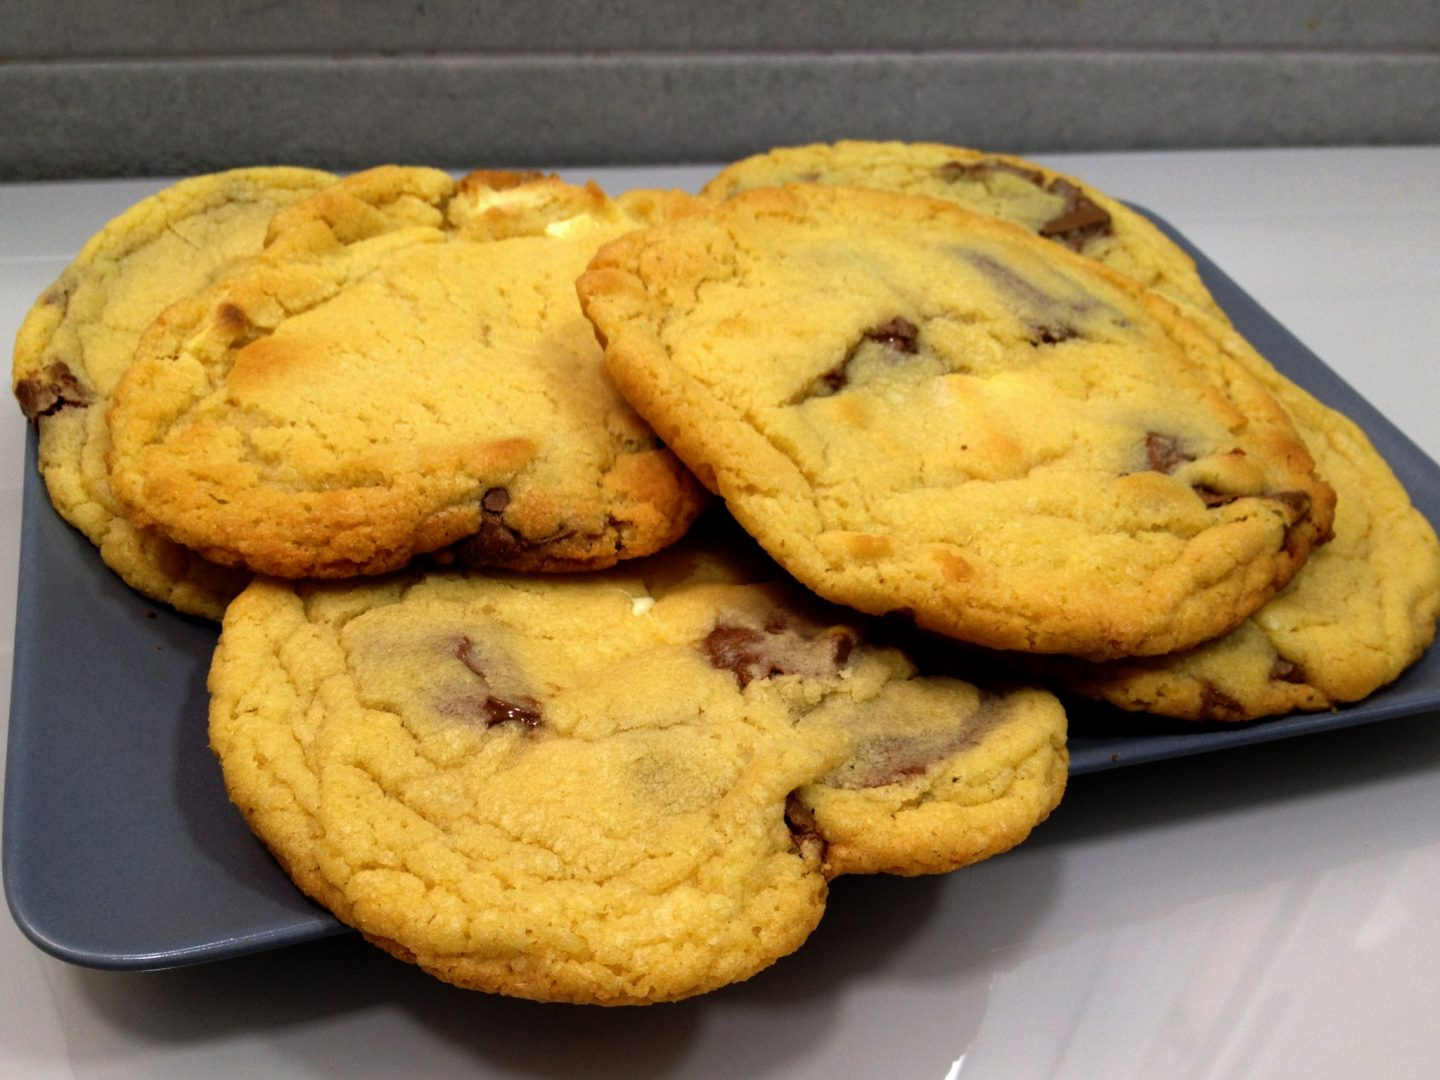 Tanya Burr's White & Milk Chocolate Cookies